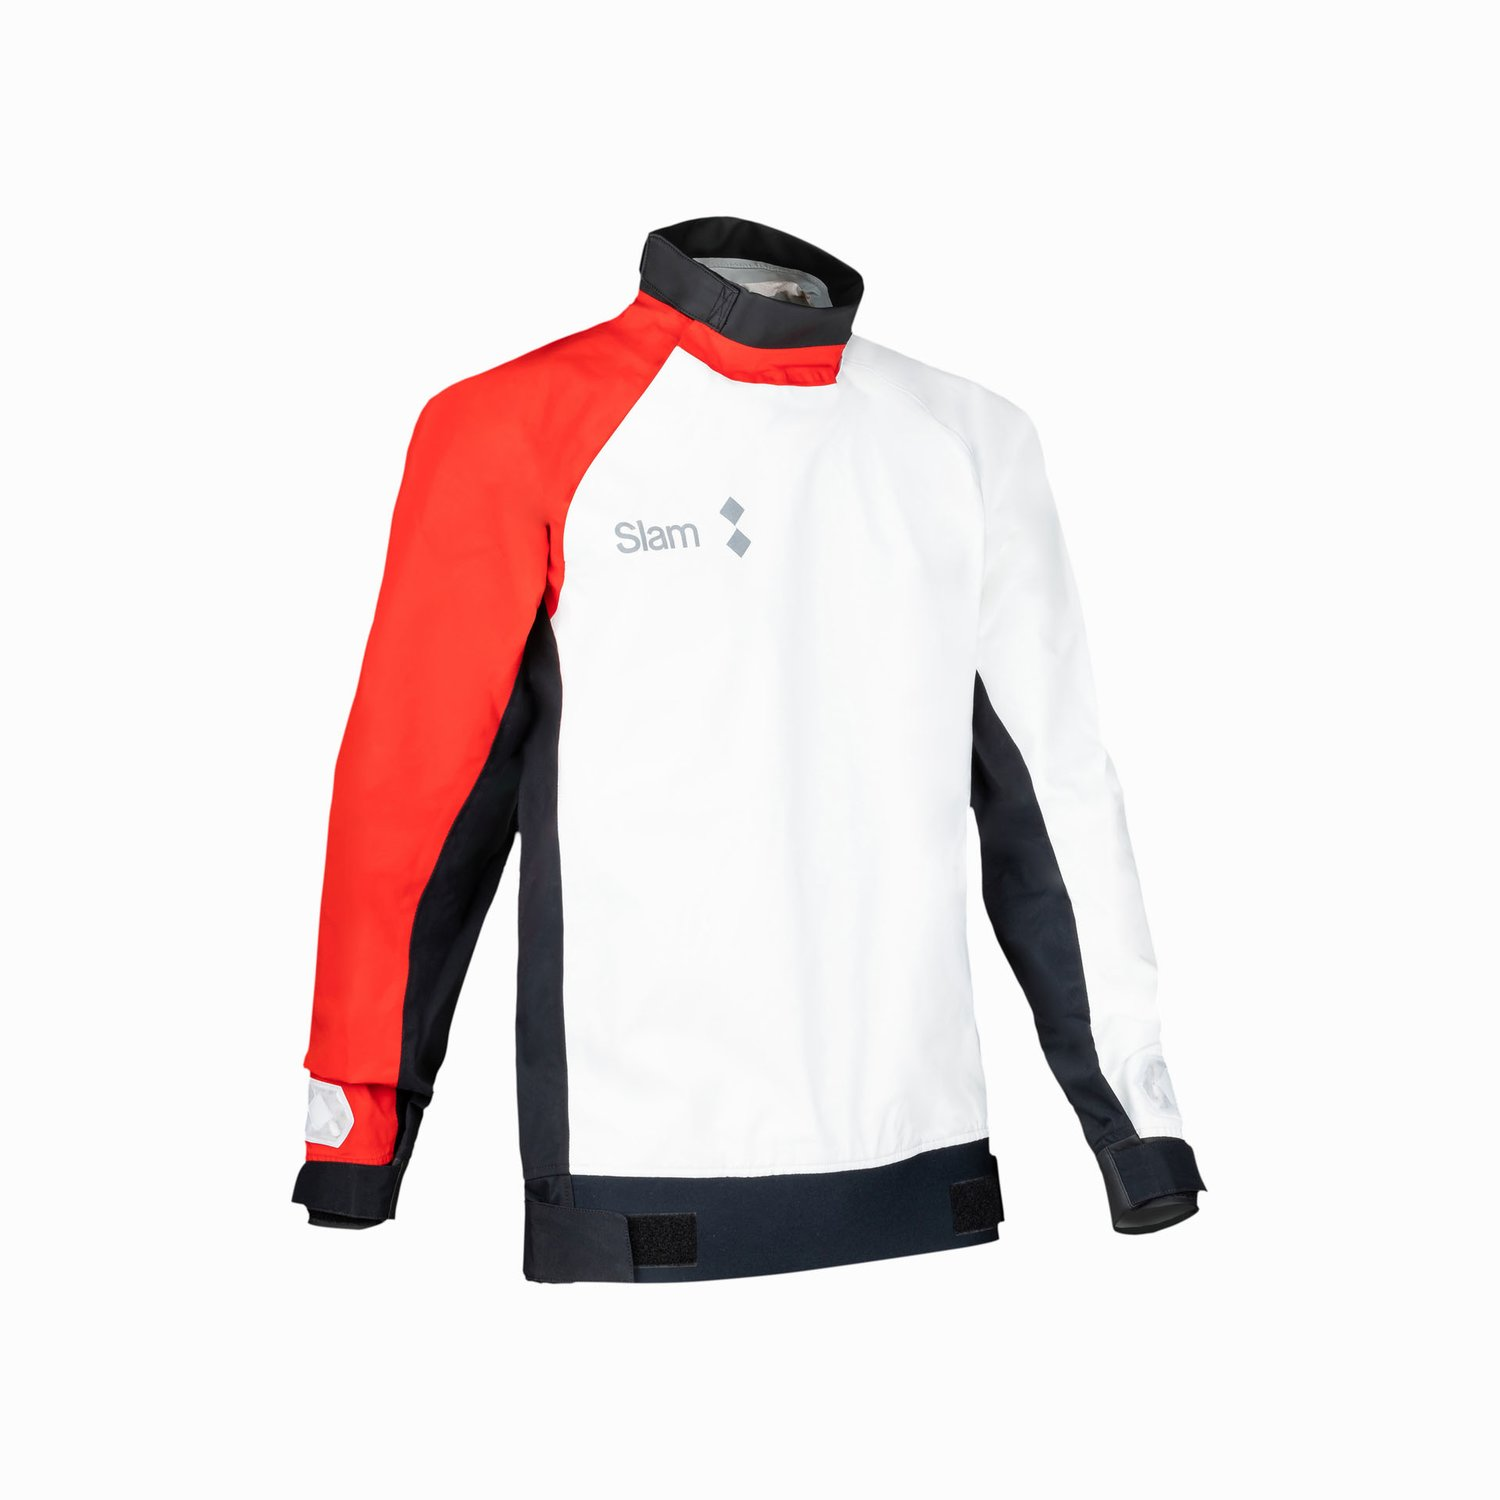 WIN-D 3 COASTAL SPRAY TOP - White / Slam Red / Black